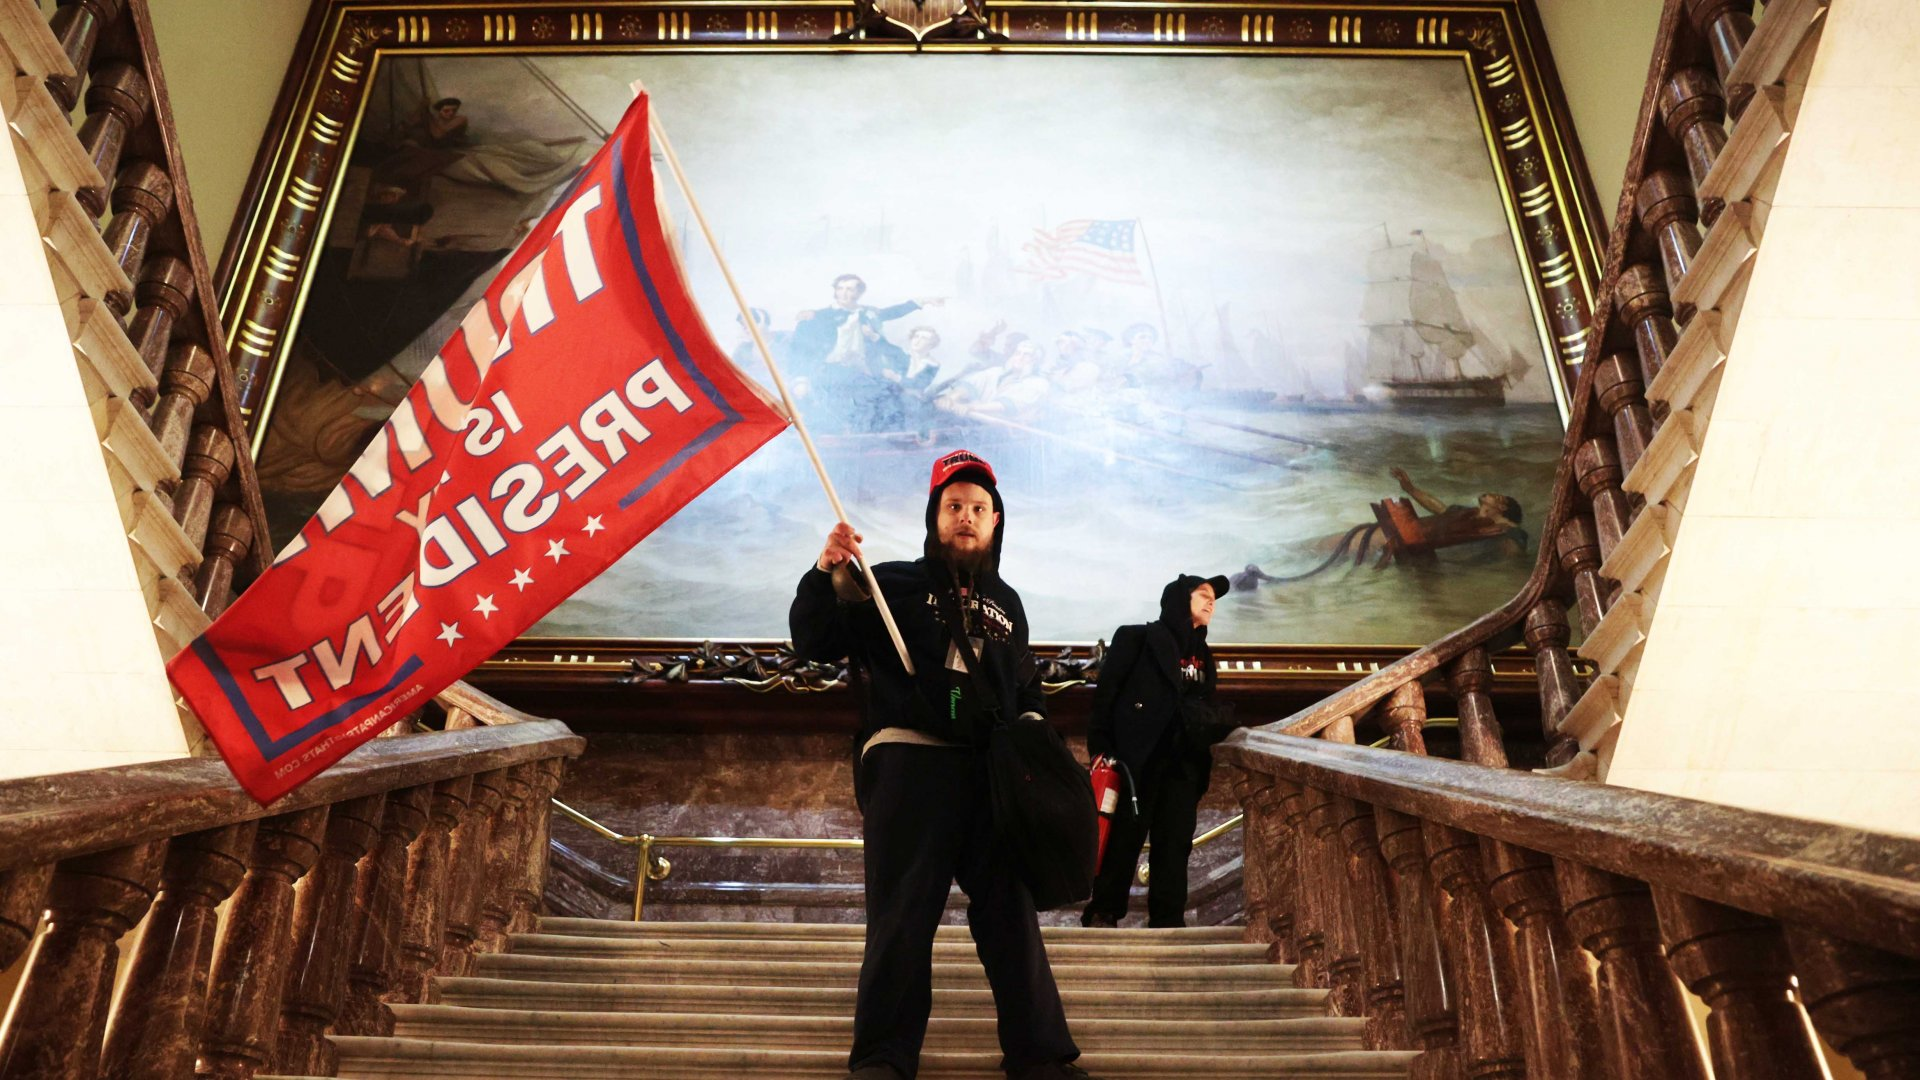 A protester holds a Trump flag inside the U.S. Capitol on January 6, 2021, disrupting Congress during a joint session to ratify President-elect Joe Biden's 306-232 Electoral College win over President Donald Trump.